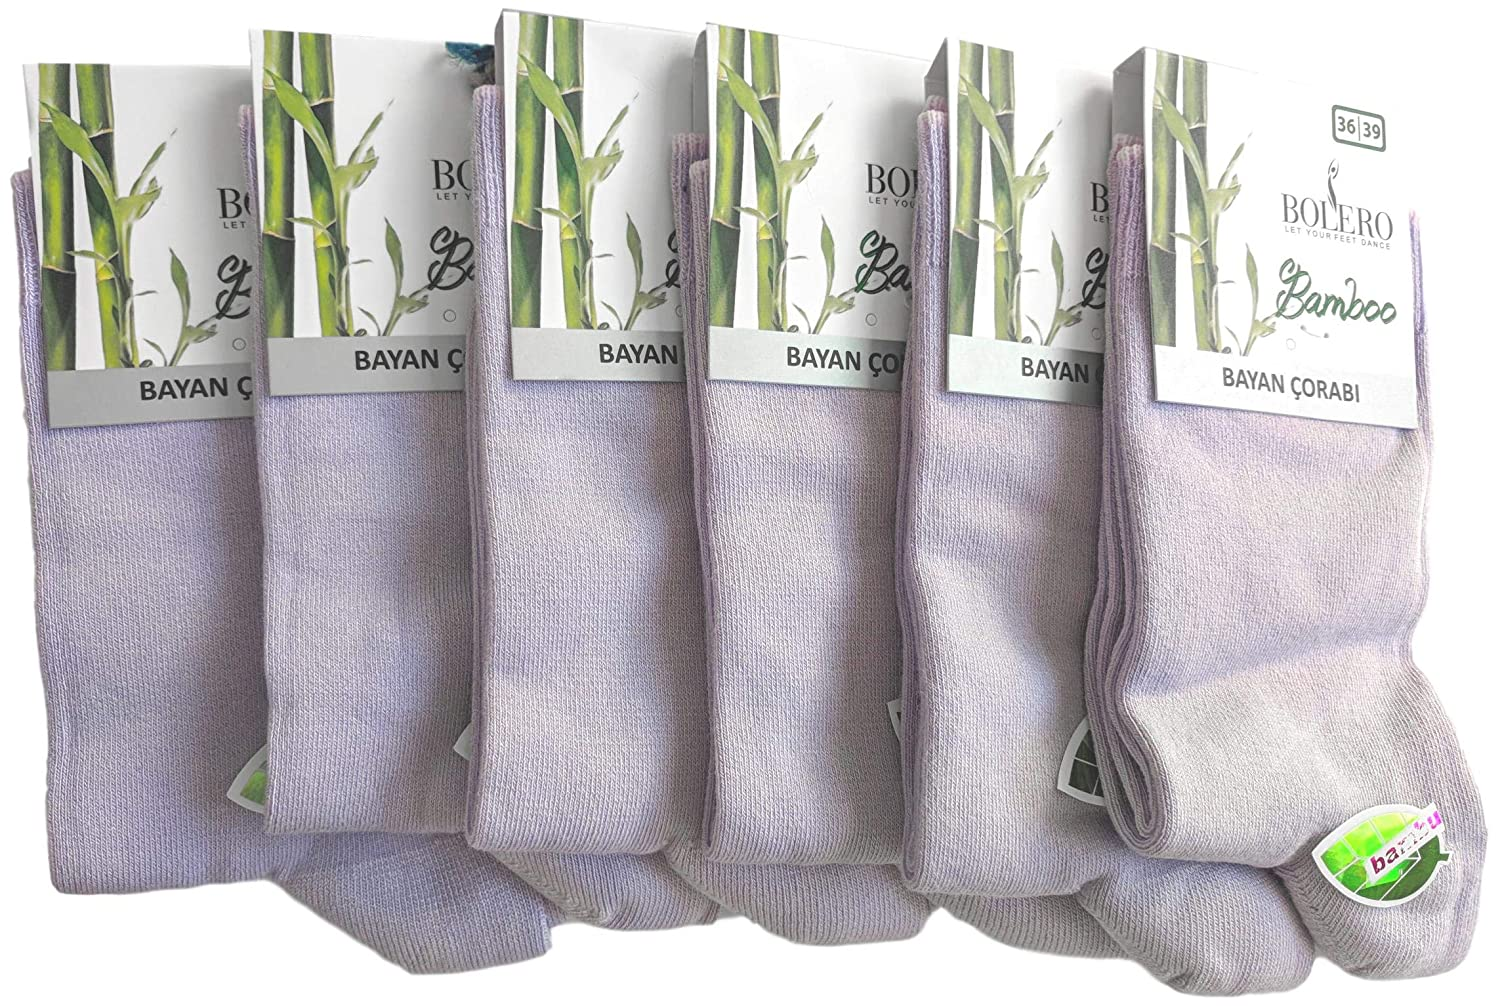 (6 Pairs) purplec Soft Bamboo Casual Crew Socks Made From Luxurious Turkish Antibacterial Bamboo Yarn